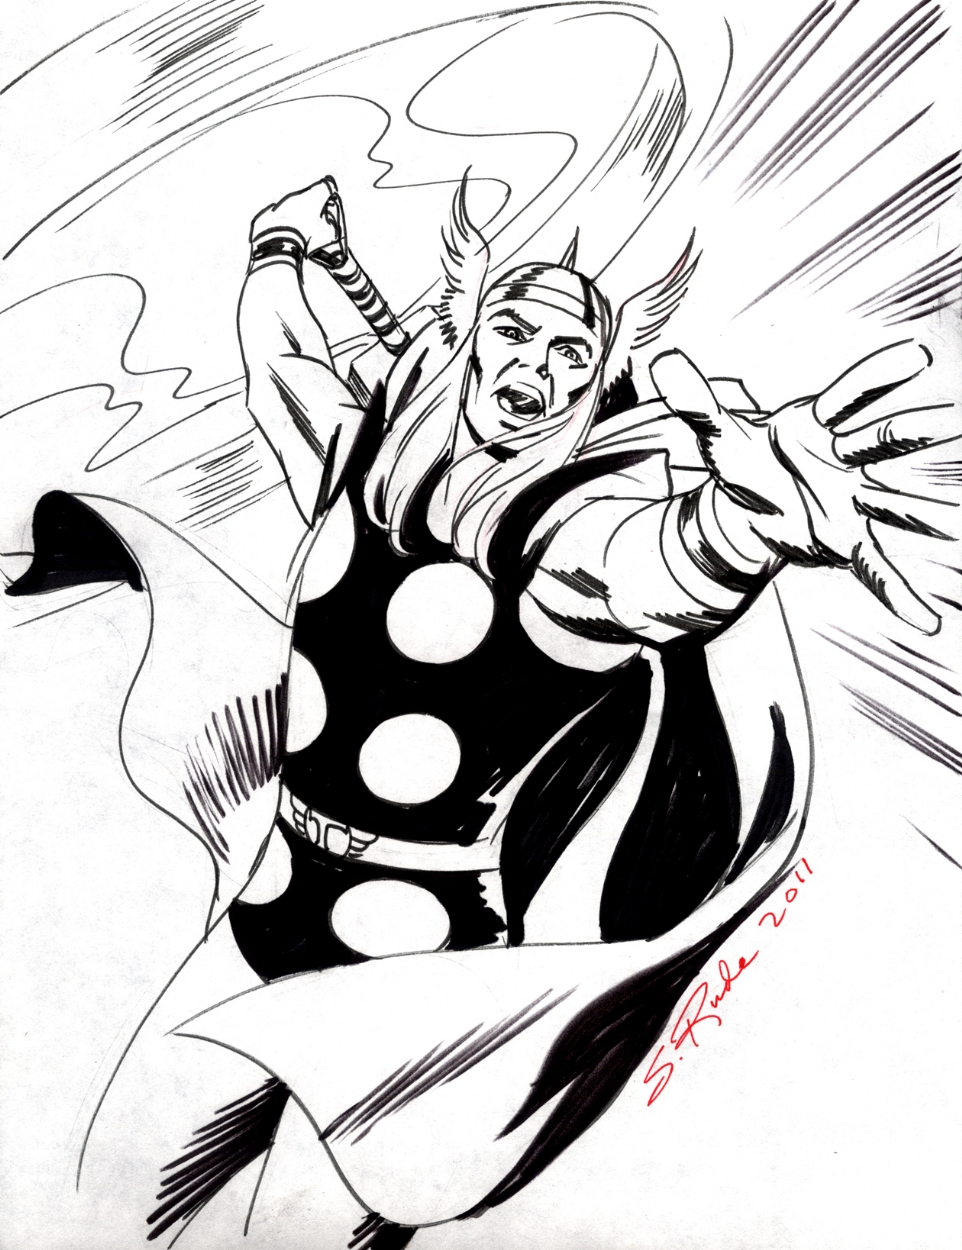 962x1250 Thor By Steve Rude, In Steve Rude's May 2011 The Mighty Thor